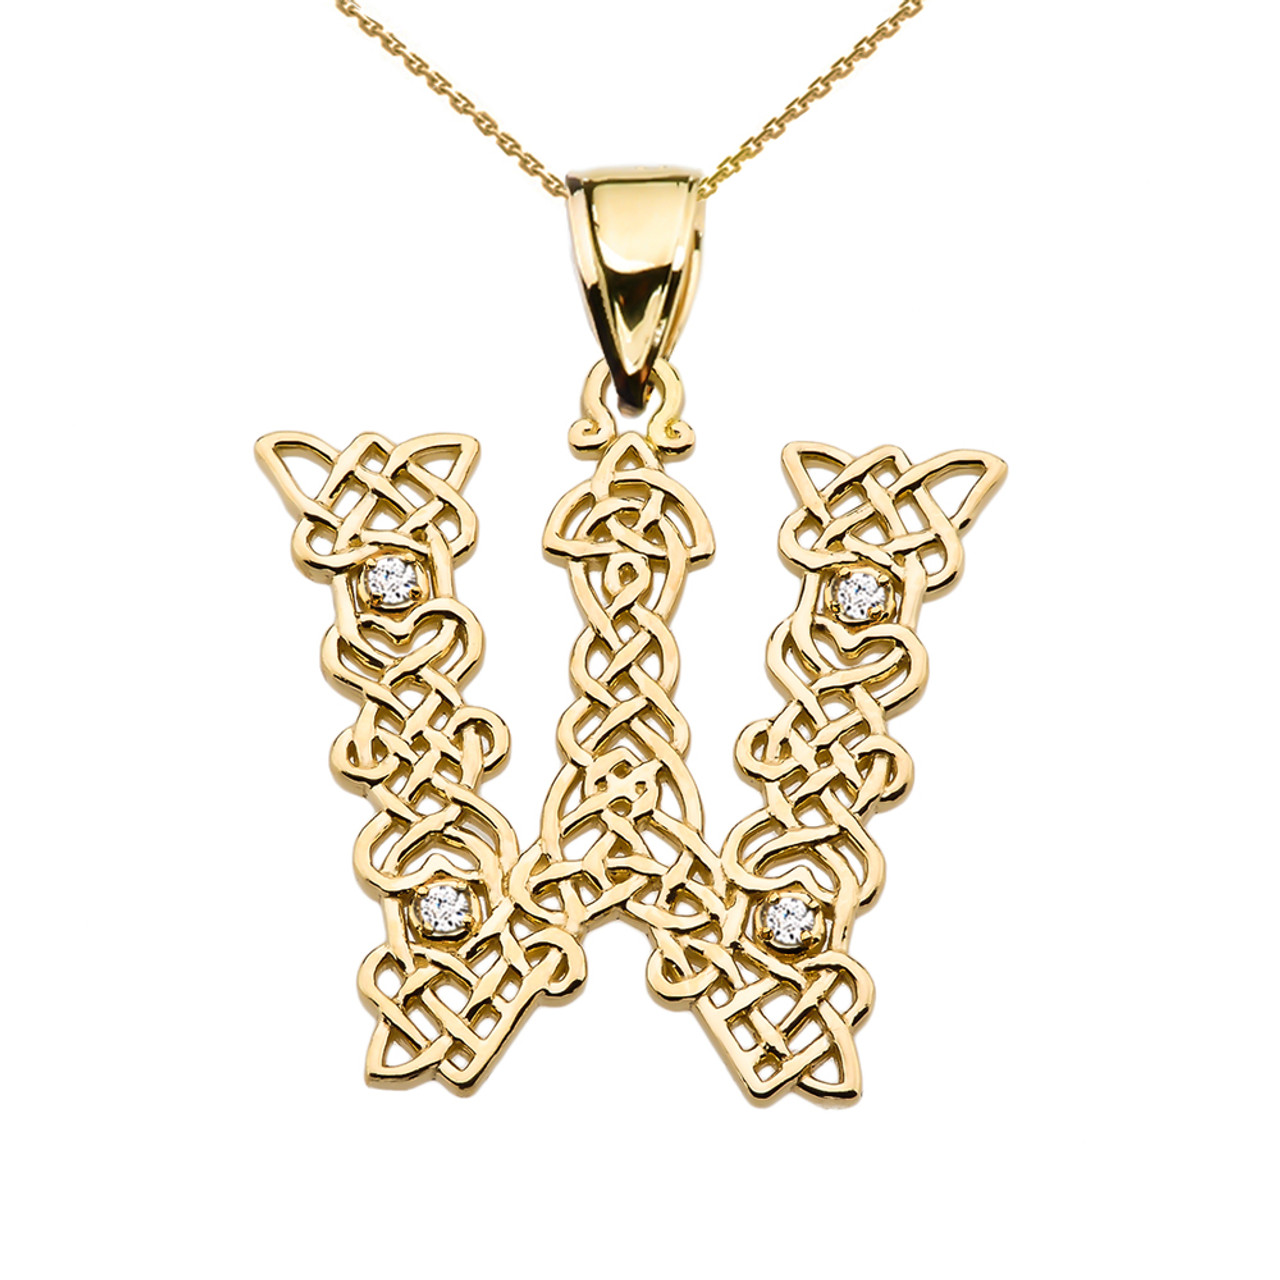 W initial in celtic knot pattern yellow gold pendant necklace with w initial in celtic knot pattern yellow gold pendant necklace with diamond aloadofball Gallery